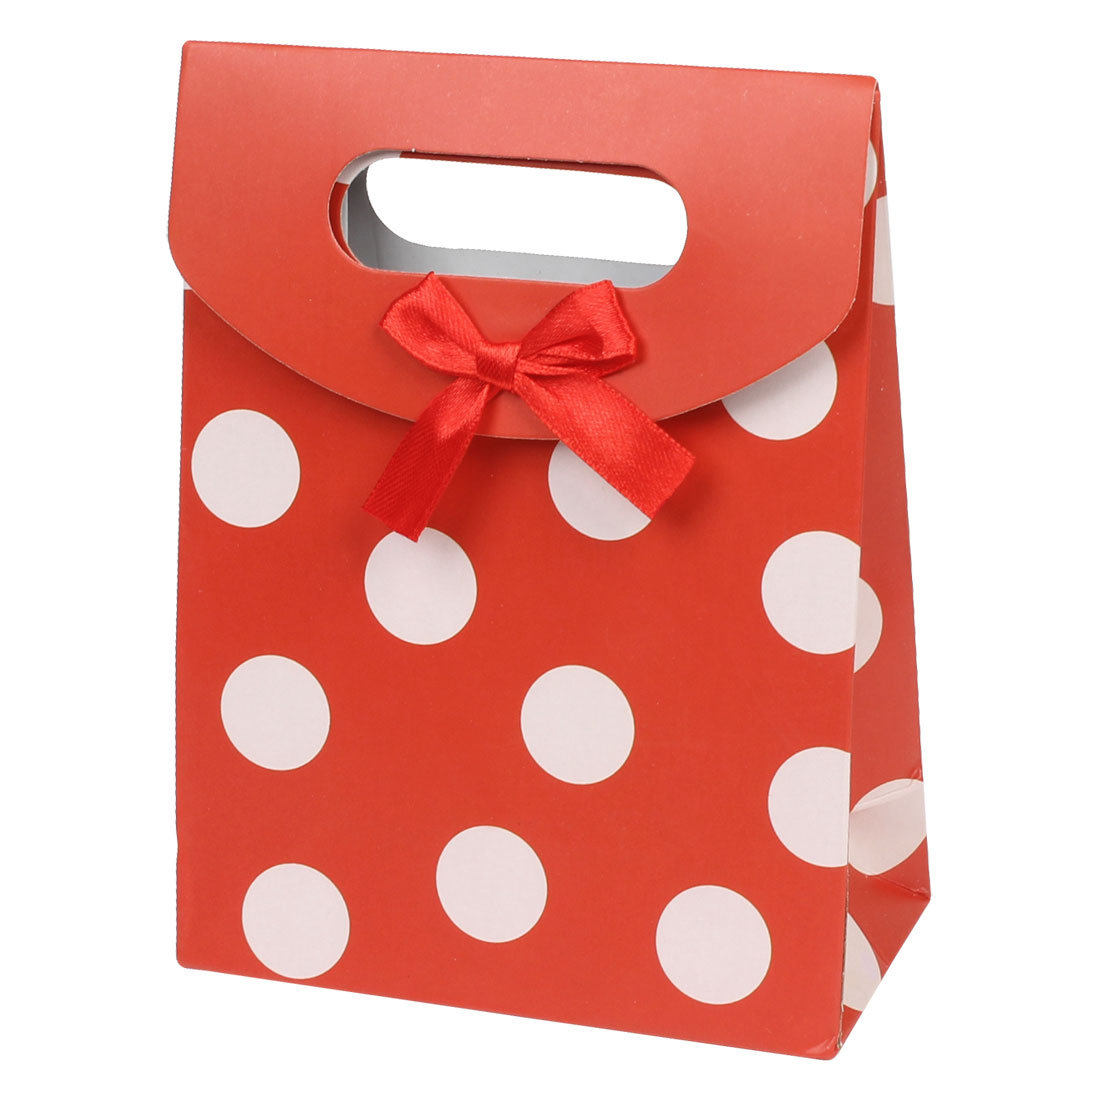 Fastener Closure White Circle Print Paper Gift Holder Bag Red